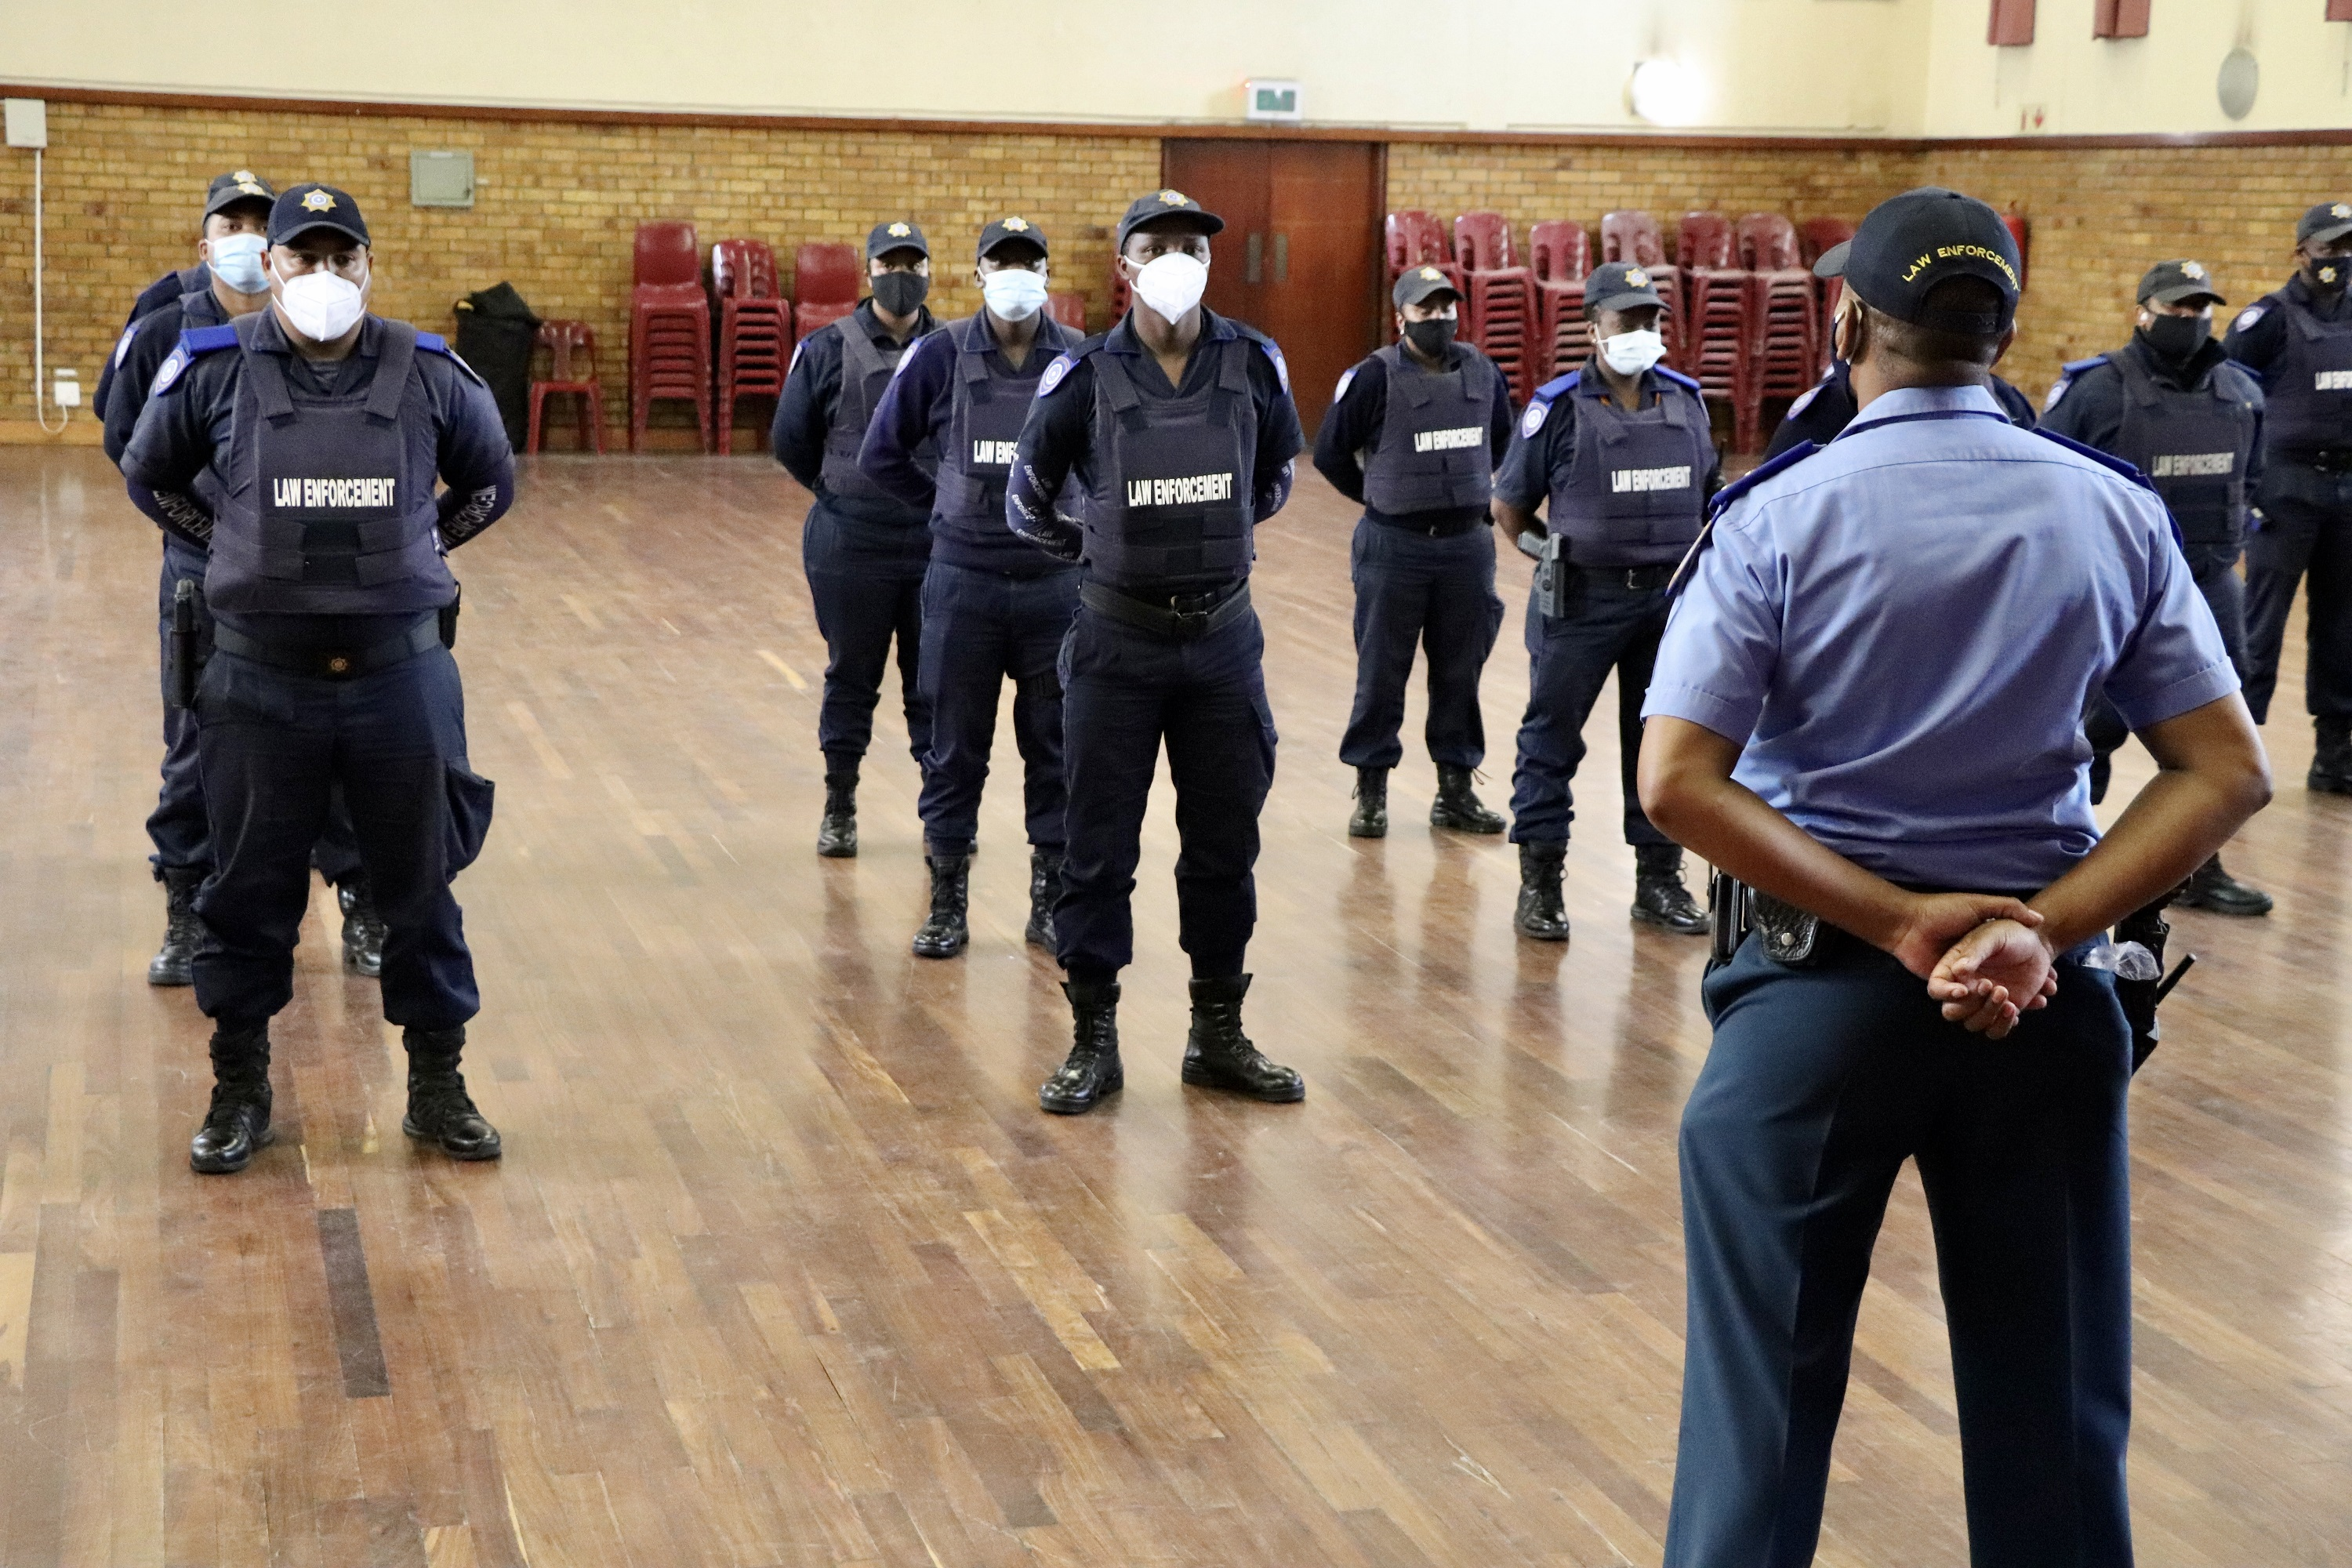 LEAP officers in Hanover Park